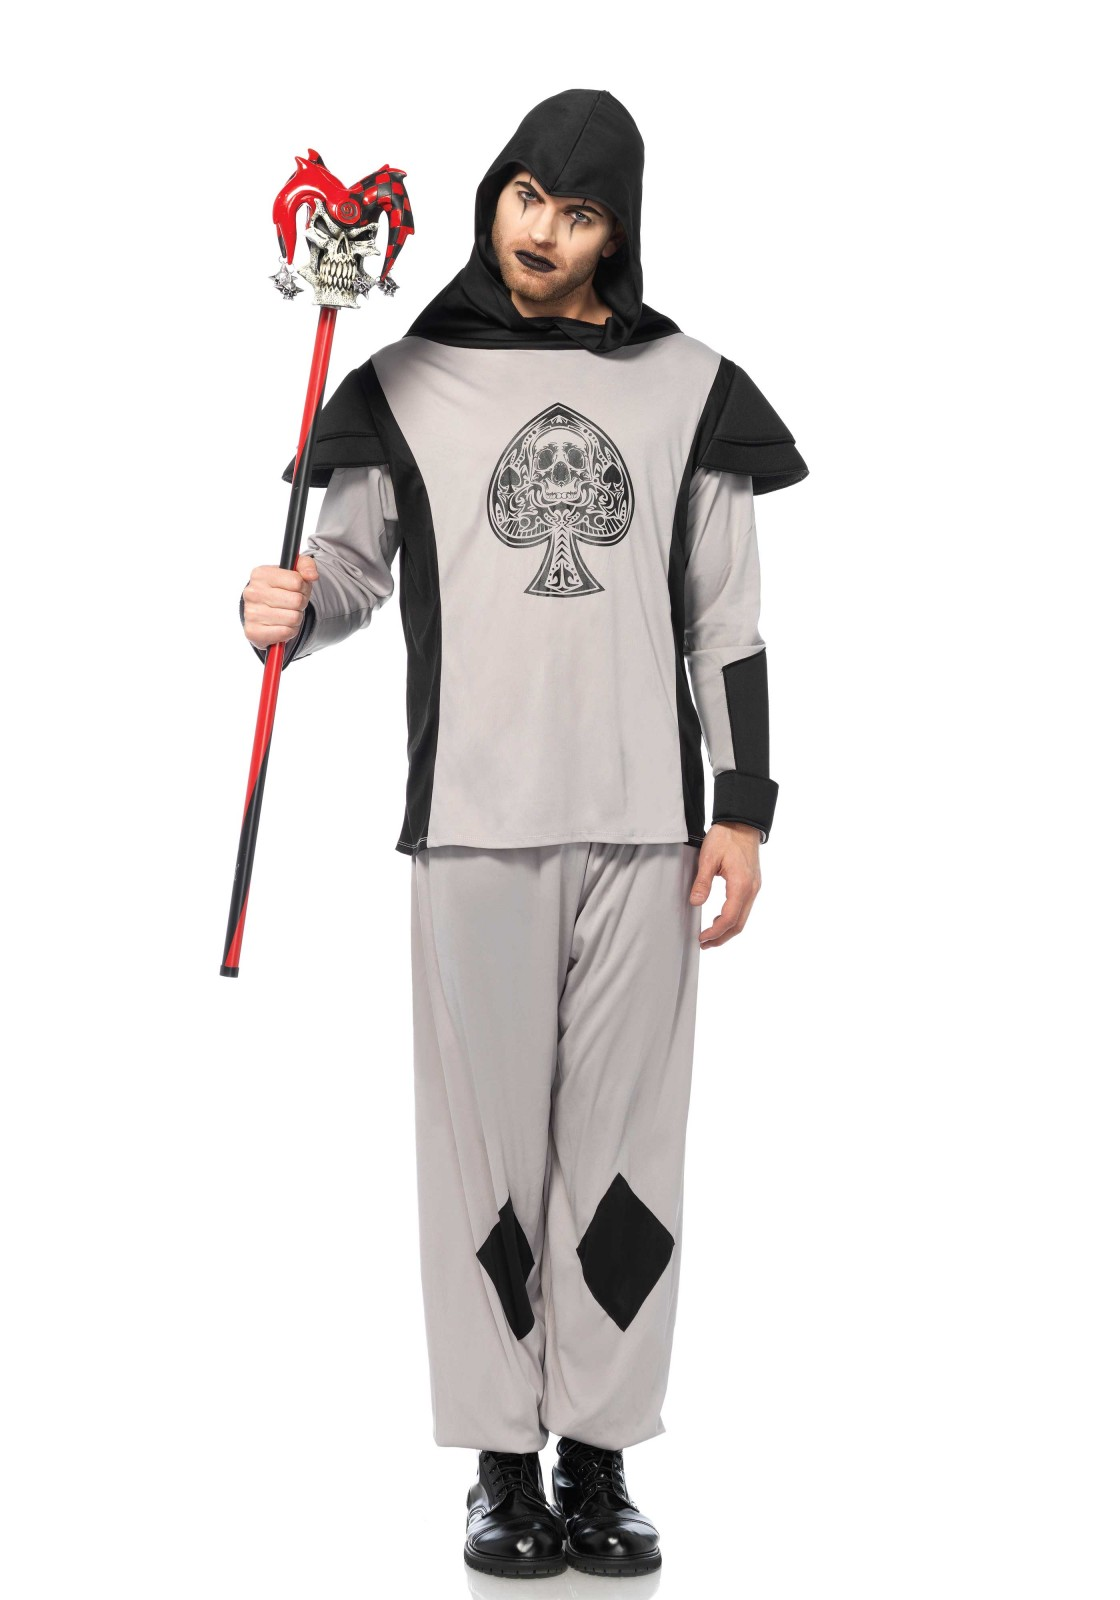 2 PC. Card Guard, includes hooded shirt with card suit detail, foam shoulder caps and pants.